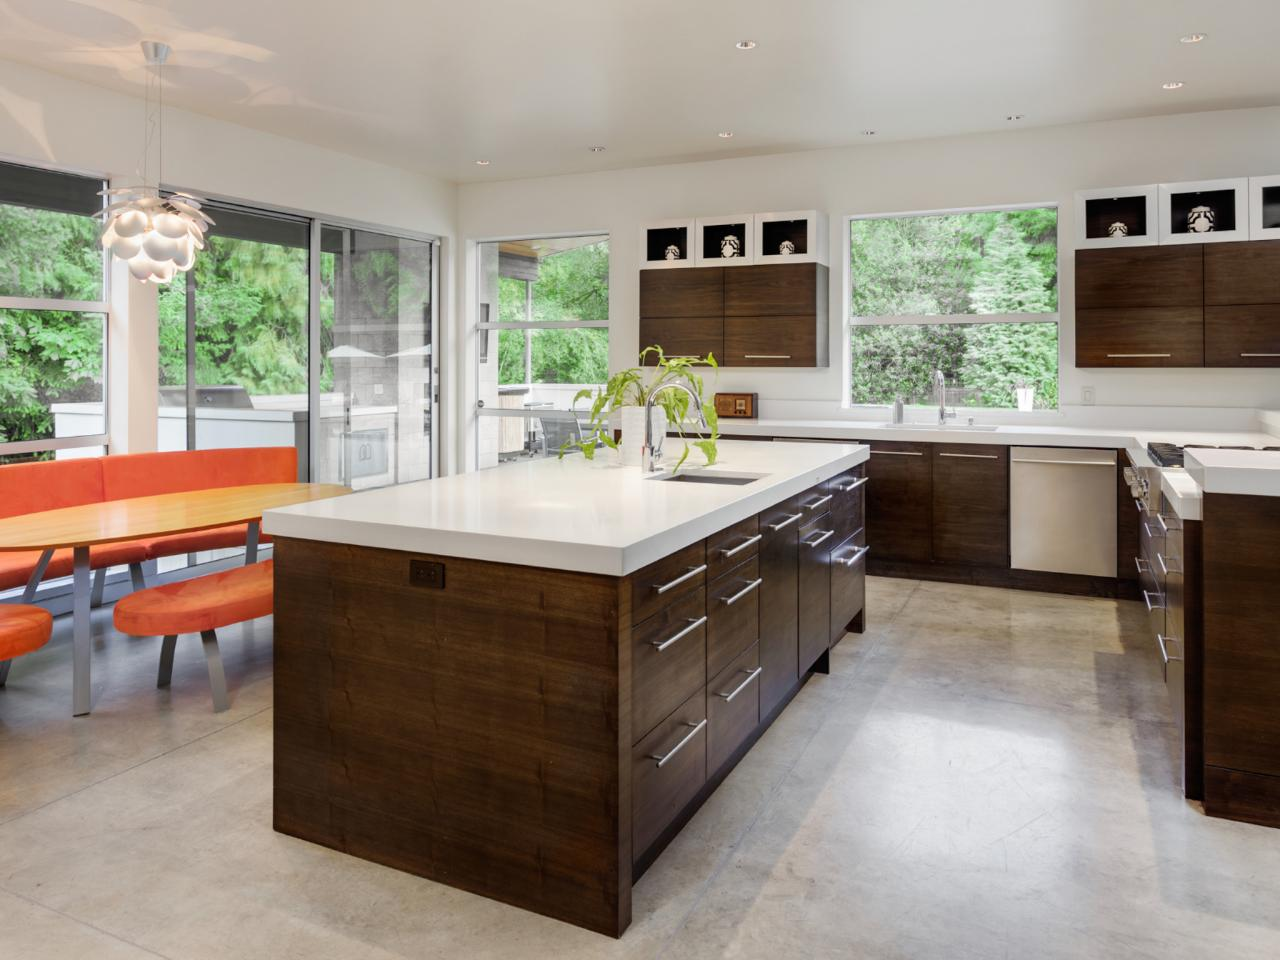 kitchen flooring options related to: kitchen floors ... KCYUUOE